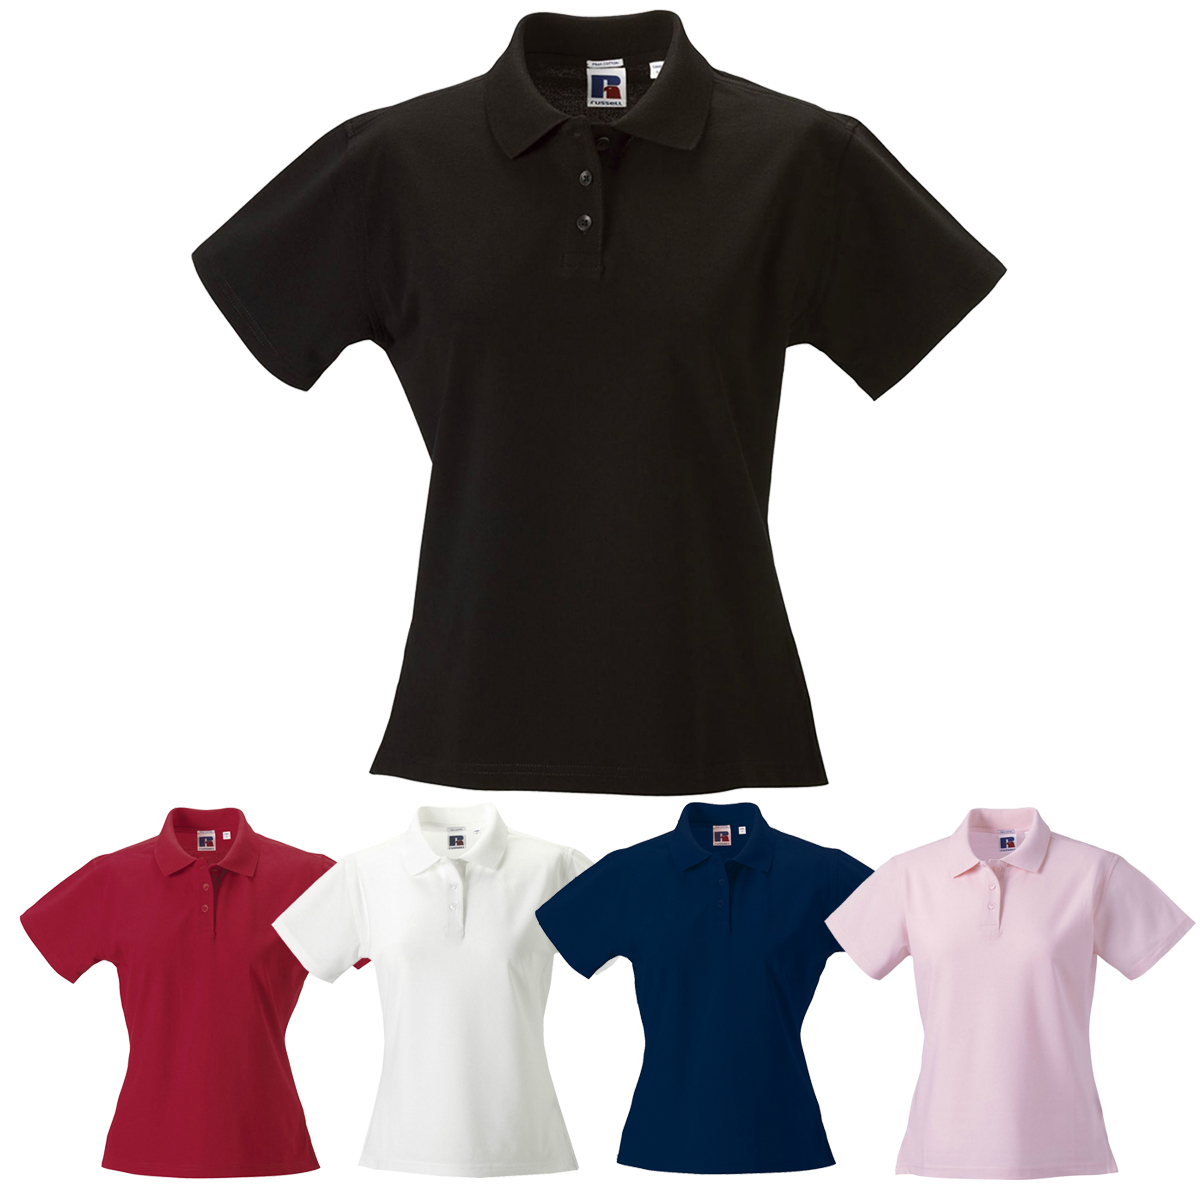 e4db884a0 Women's Classic Polo Top Short Sleeve T-Shirt Plain Shirt 100% Pima Cotton